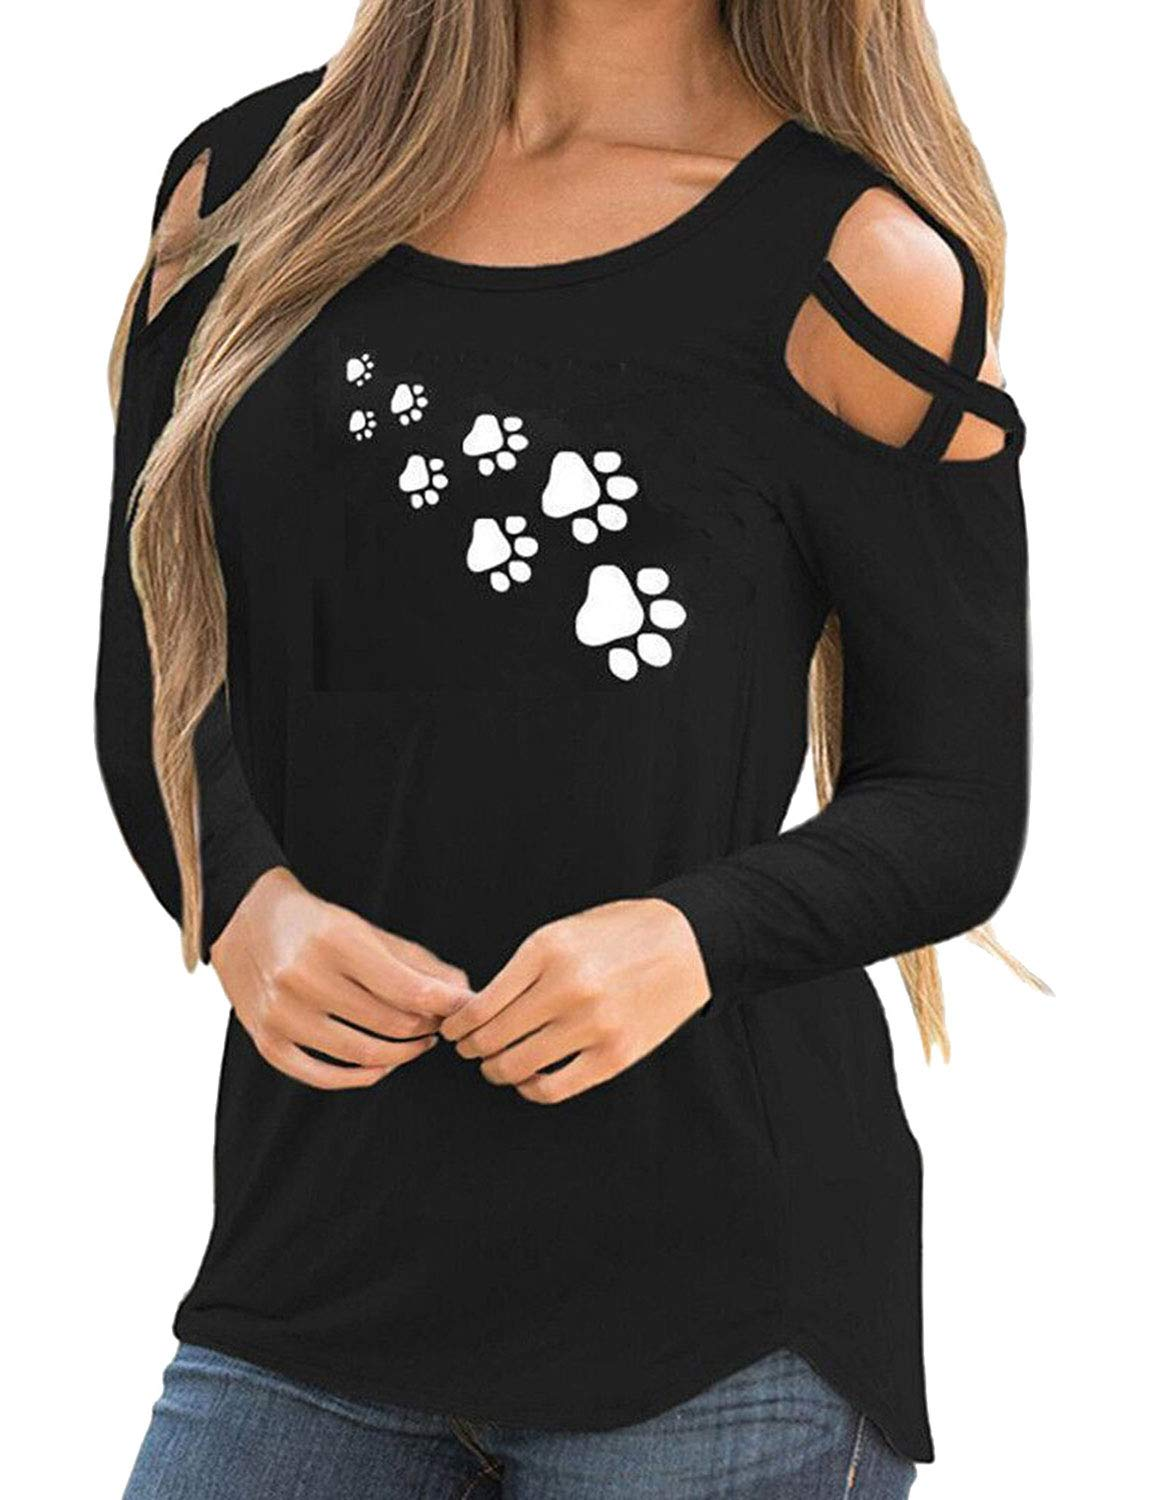 Nlife Women Graphic Print Round Neck Long Sleeve Blouse Criss Cross Cold Shoulder Solid Color Casual Tops Shirt